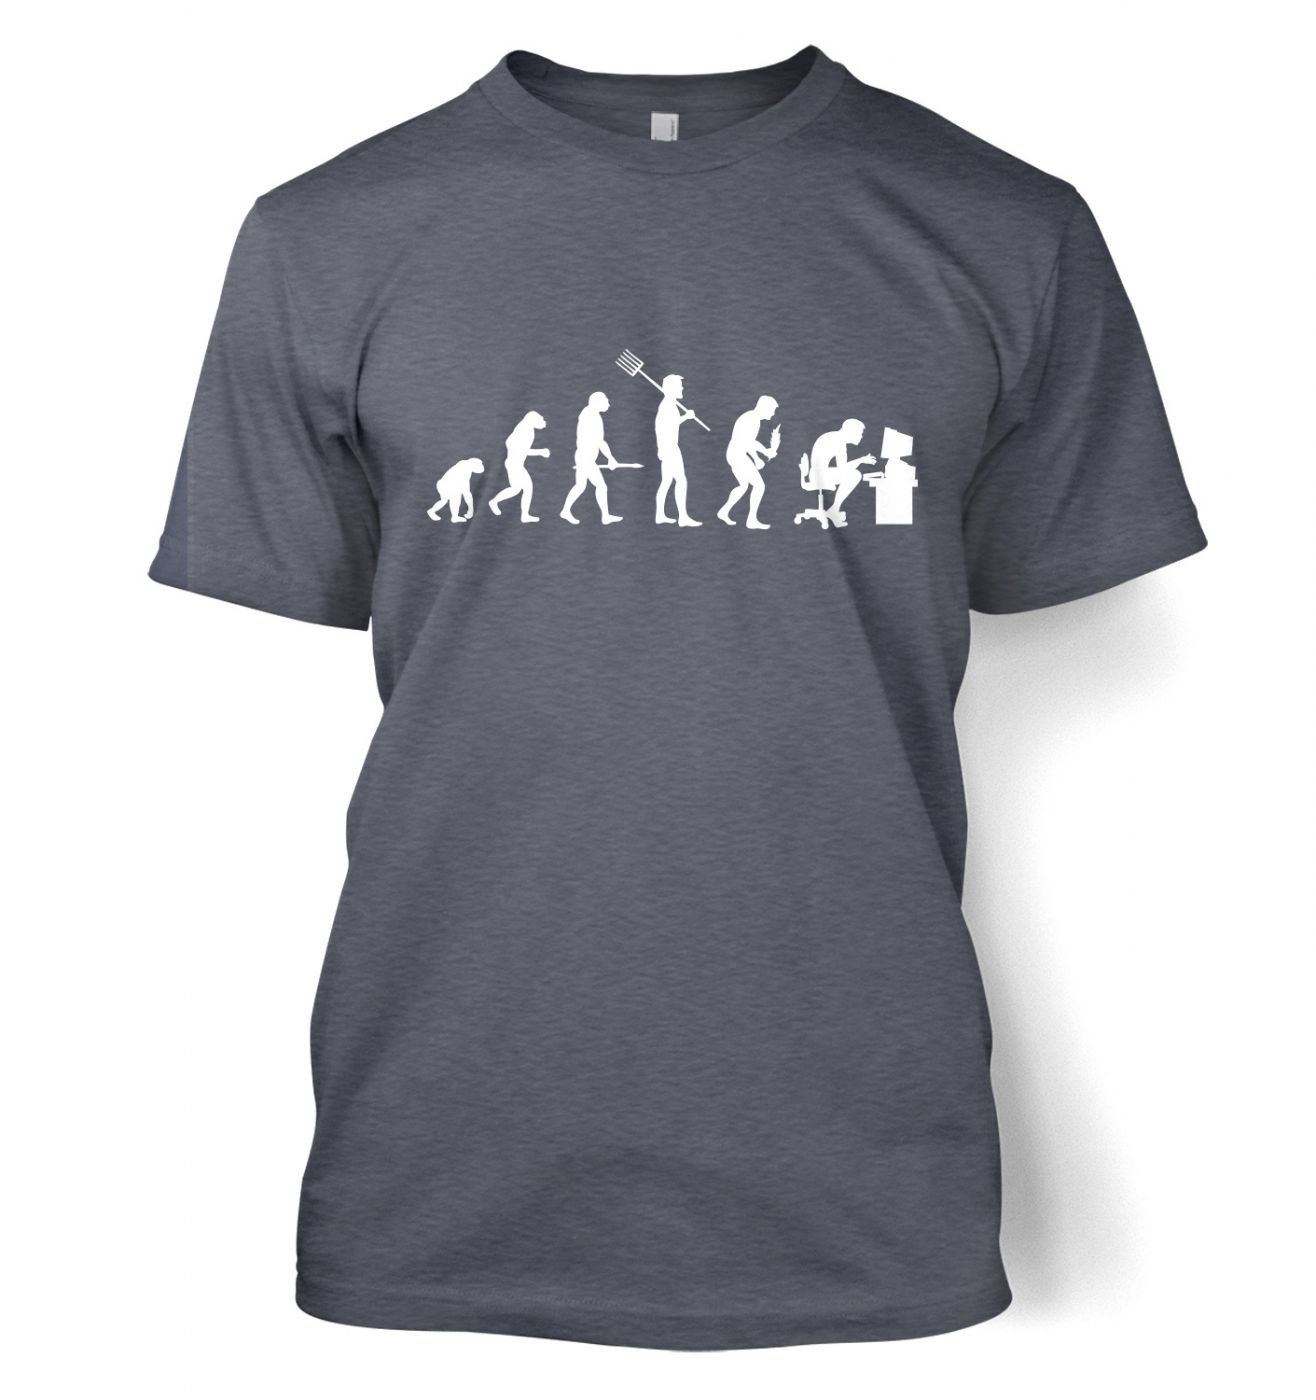 Evolution of a geeky man (white detail) t-shirt